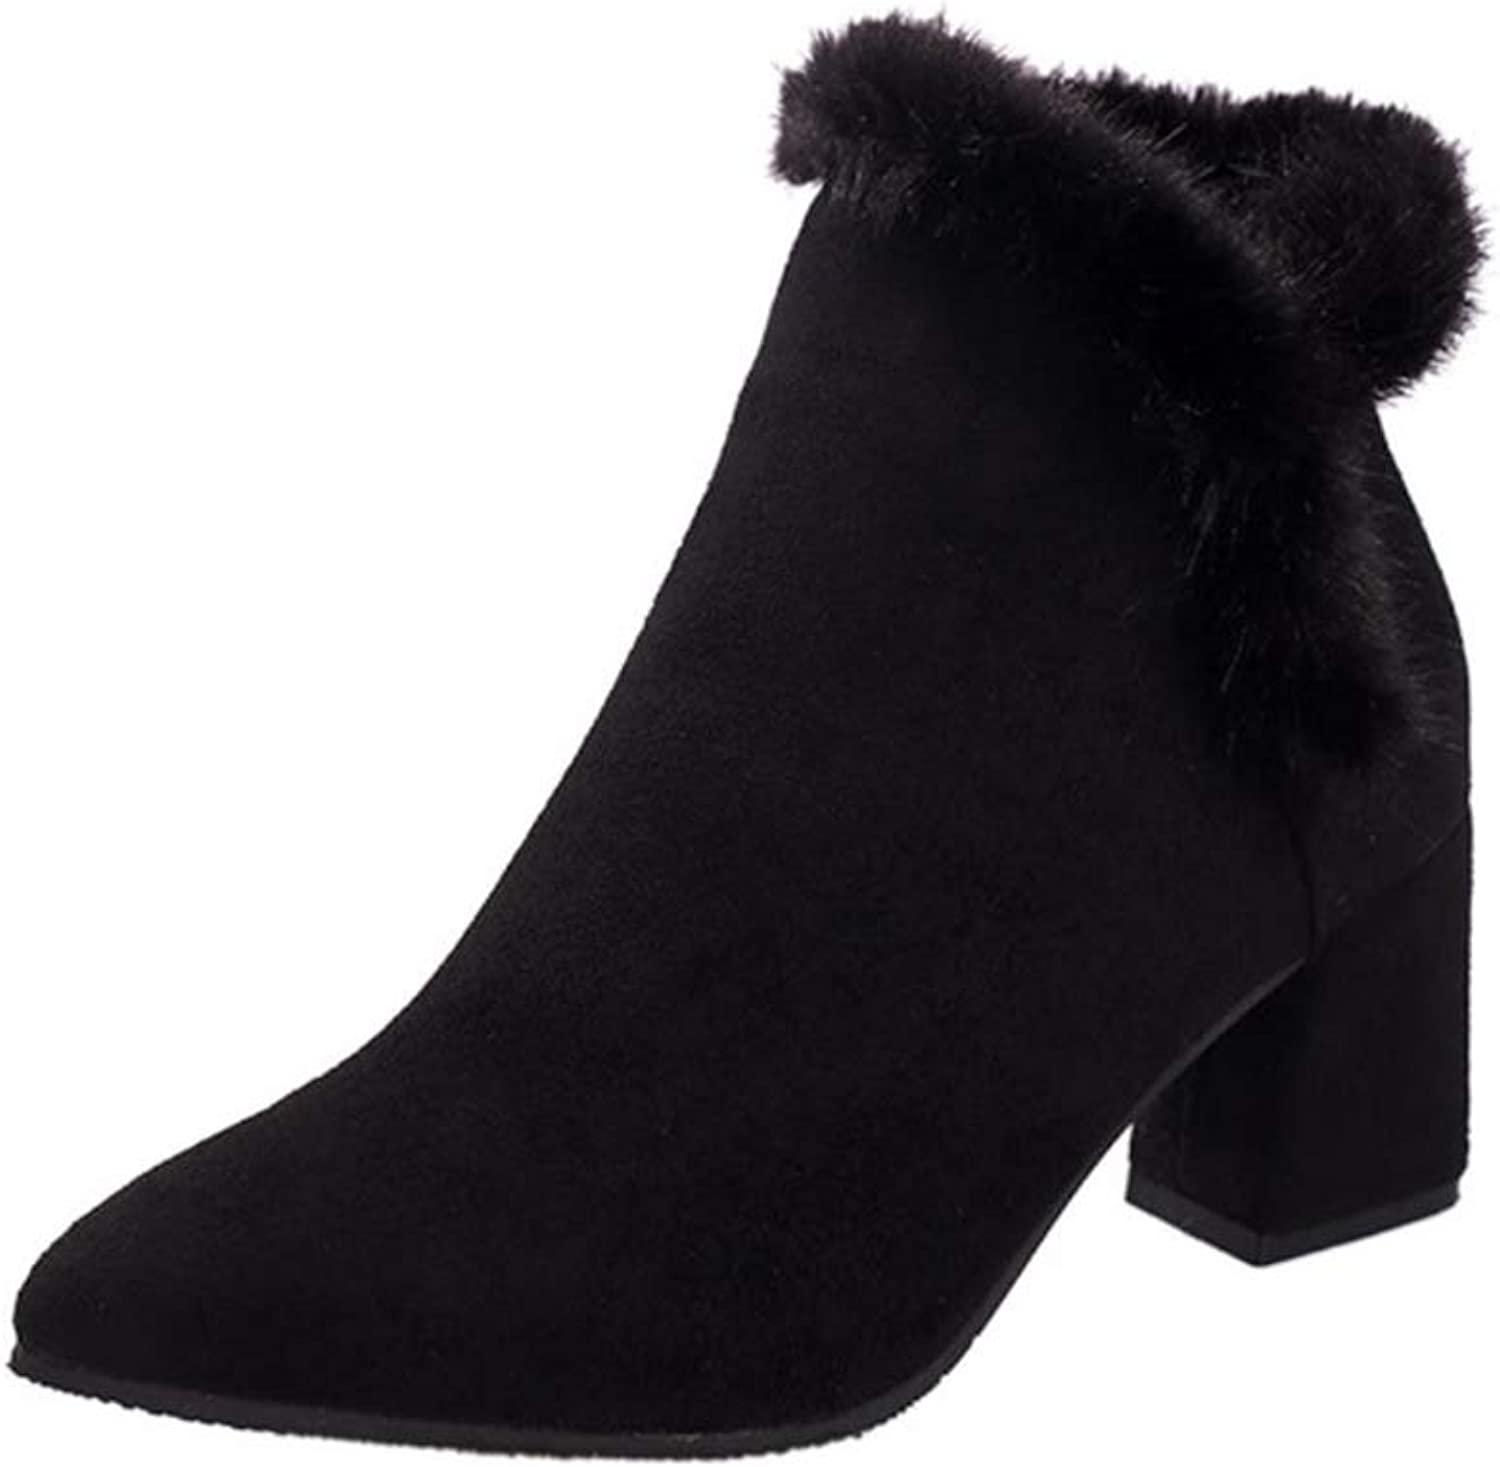 Women's Winter Snow Boots Warm Fur Lining Ankle Bootie Outdoor Anti-Slip Boots shoes Size